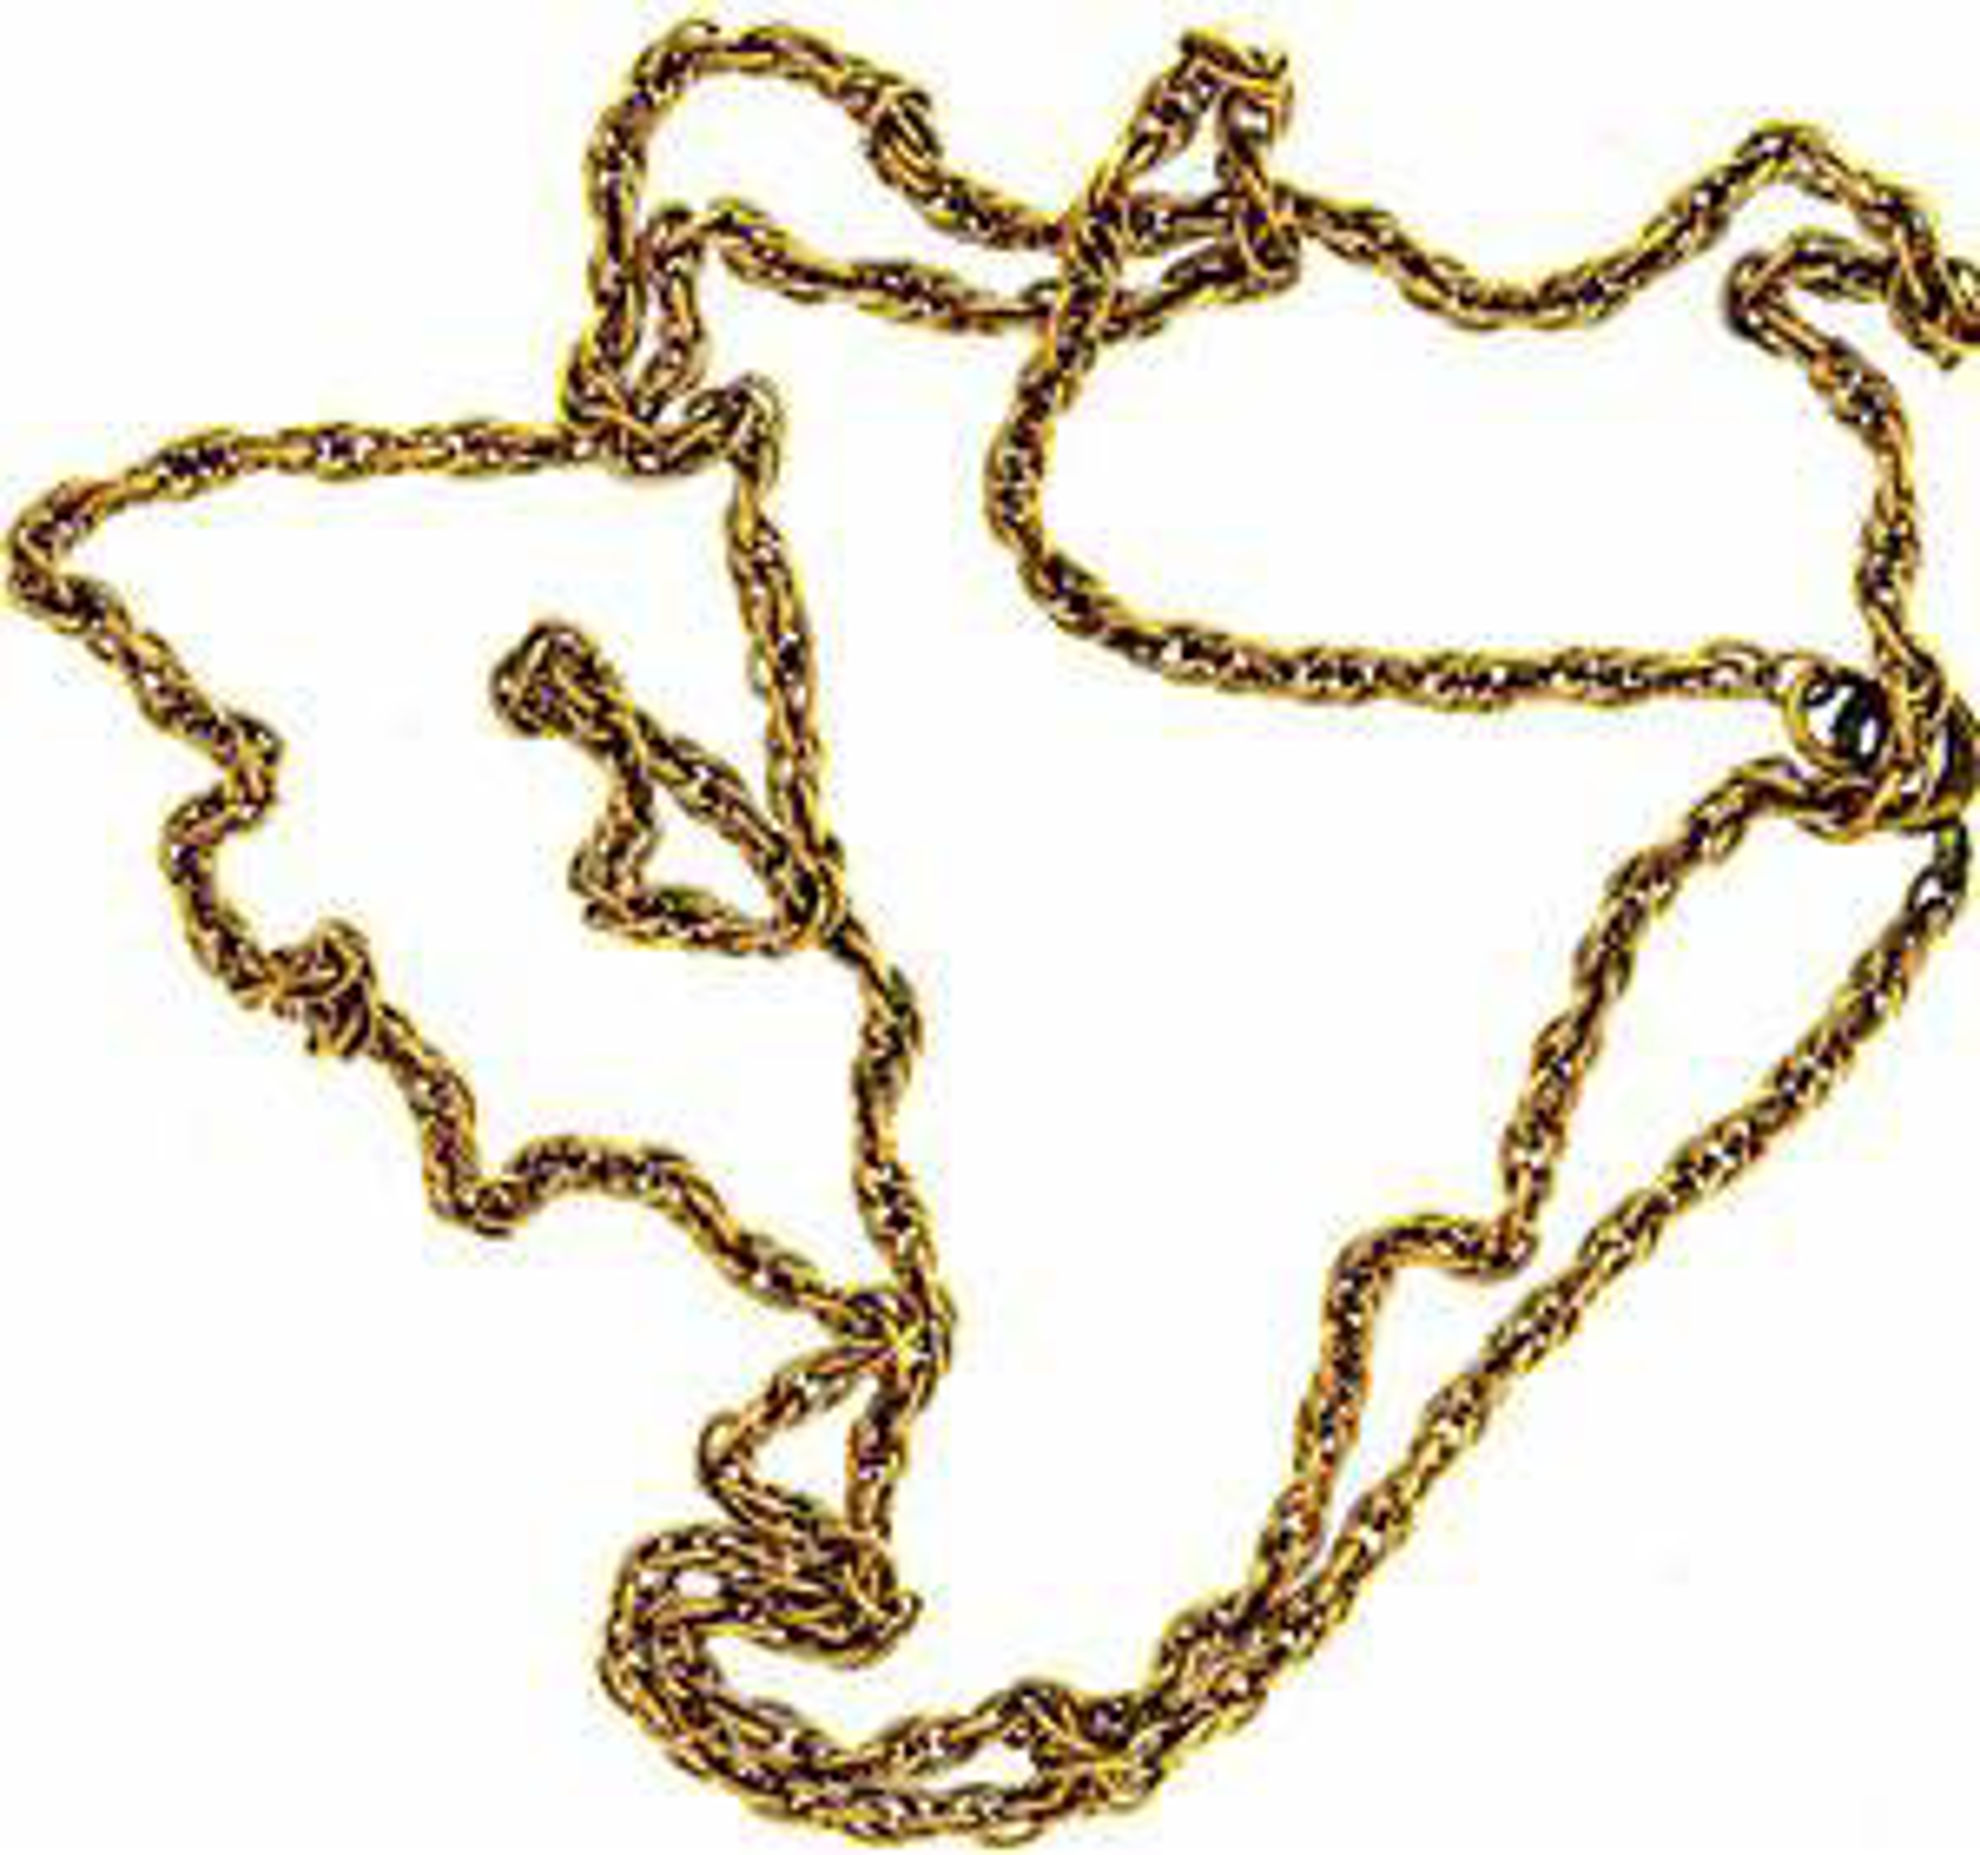 Picture of Chains 10kt-2.7 DWT, 4.2 Grams